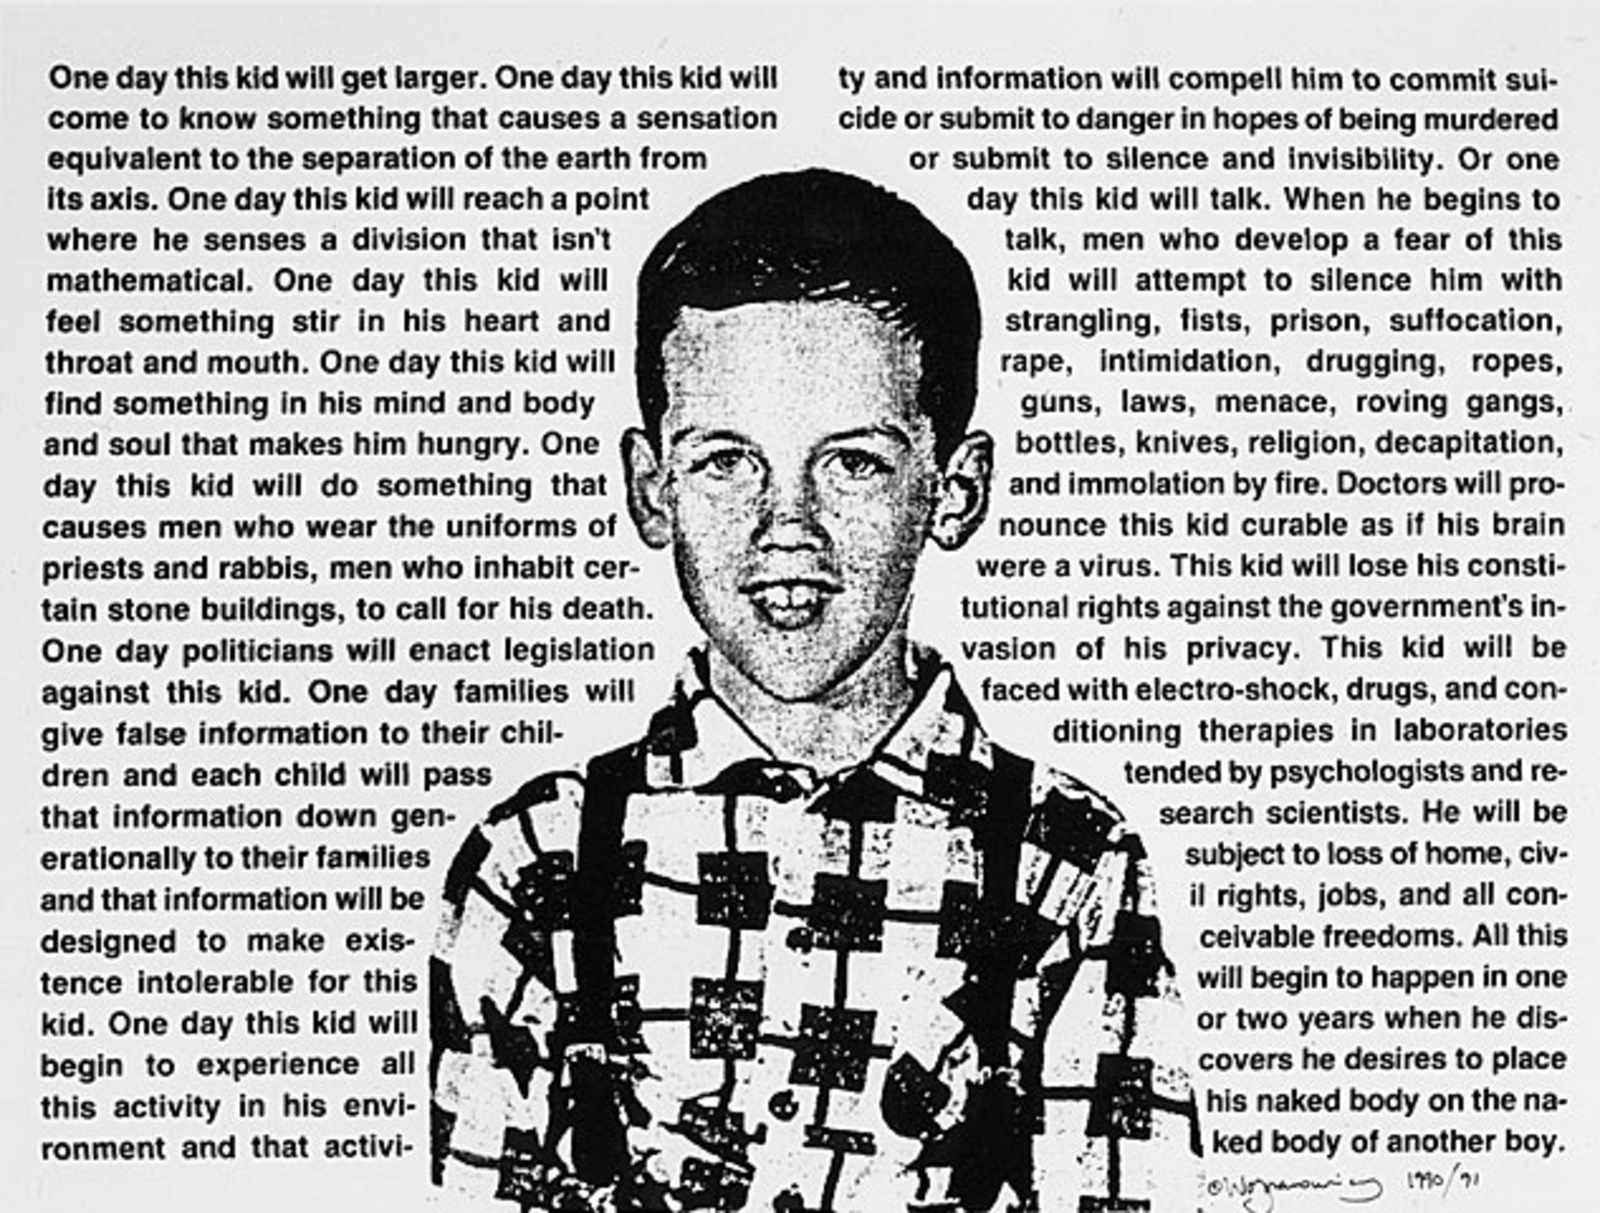 David Wojnarowicz's Writing Offers a Call to Action